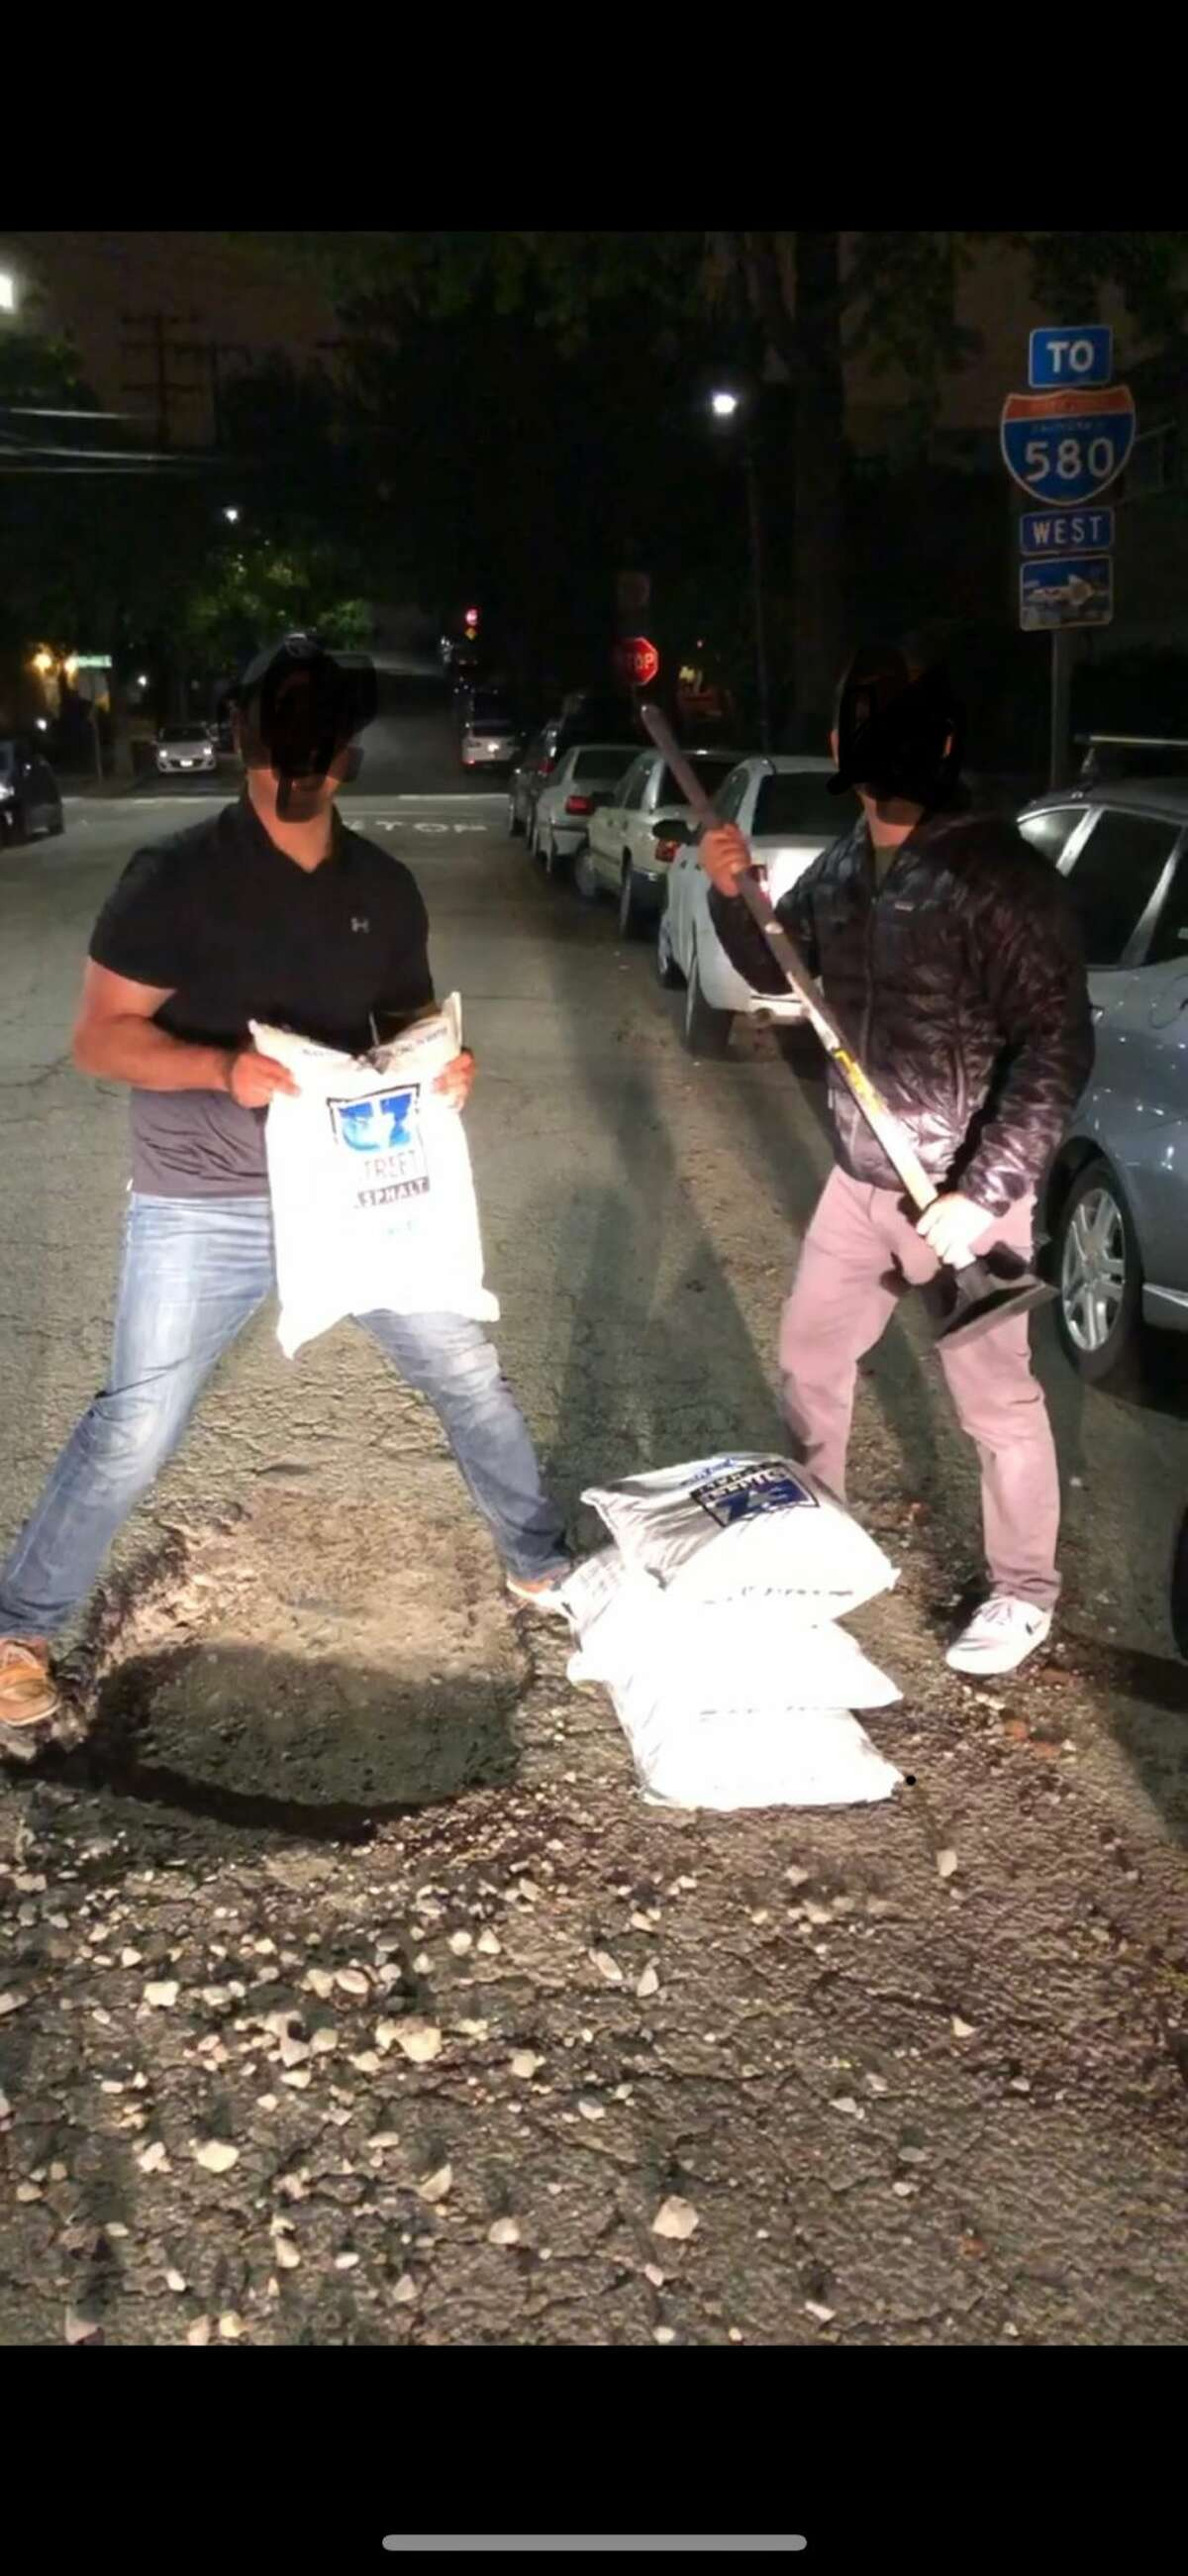 """The """"Pothole Vigilantes"""" shared photos of potholes they've patched up in Oakland in recent weeks. They edited this photo before sharing to obscure identities."""